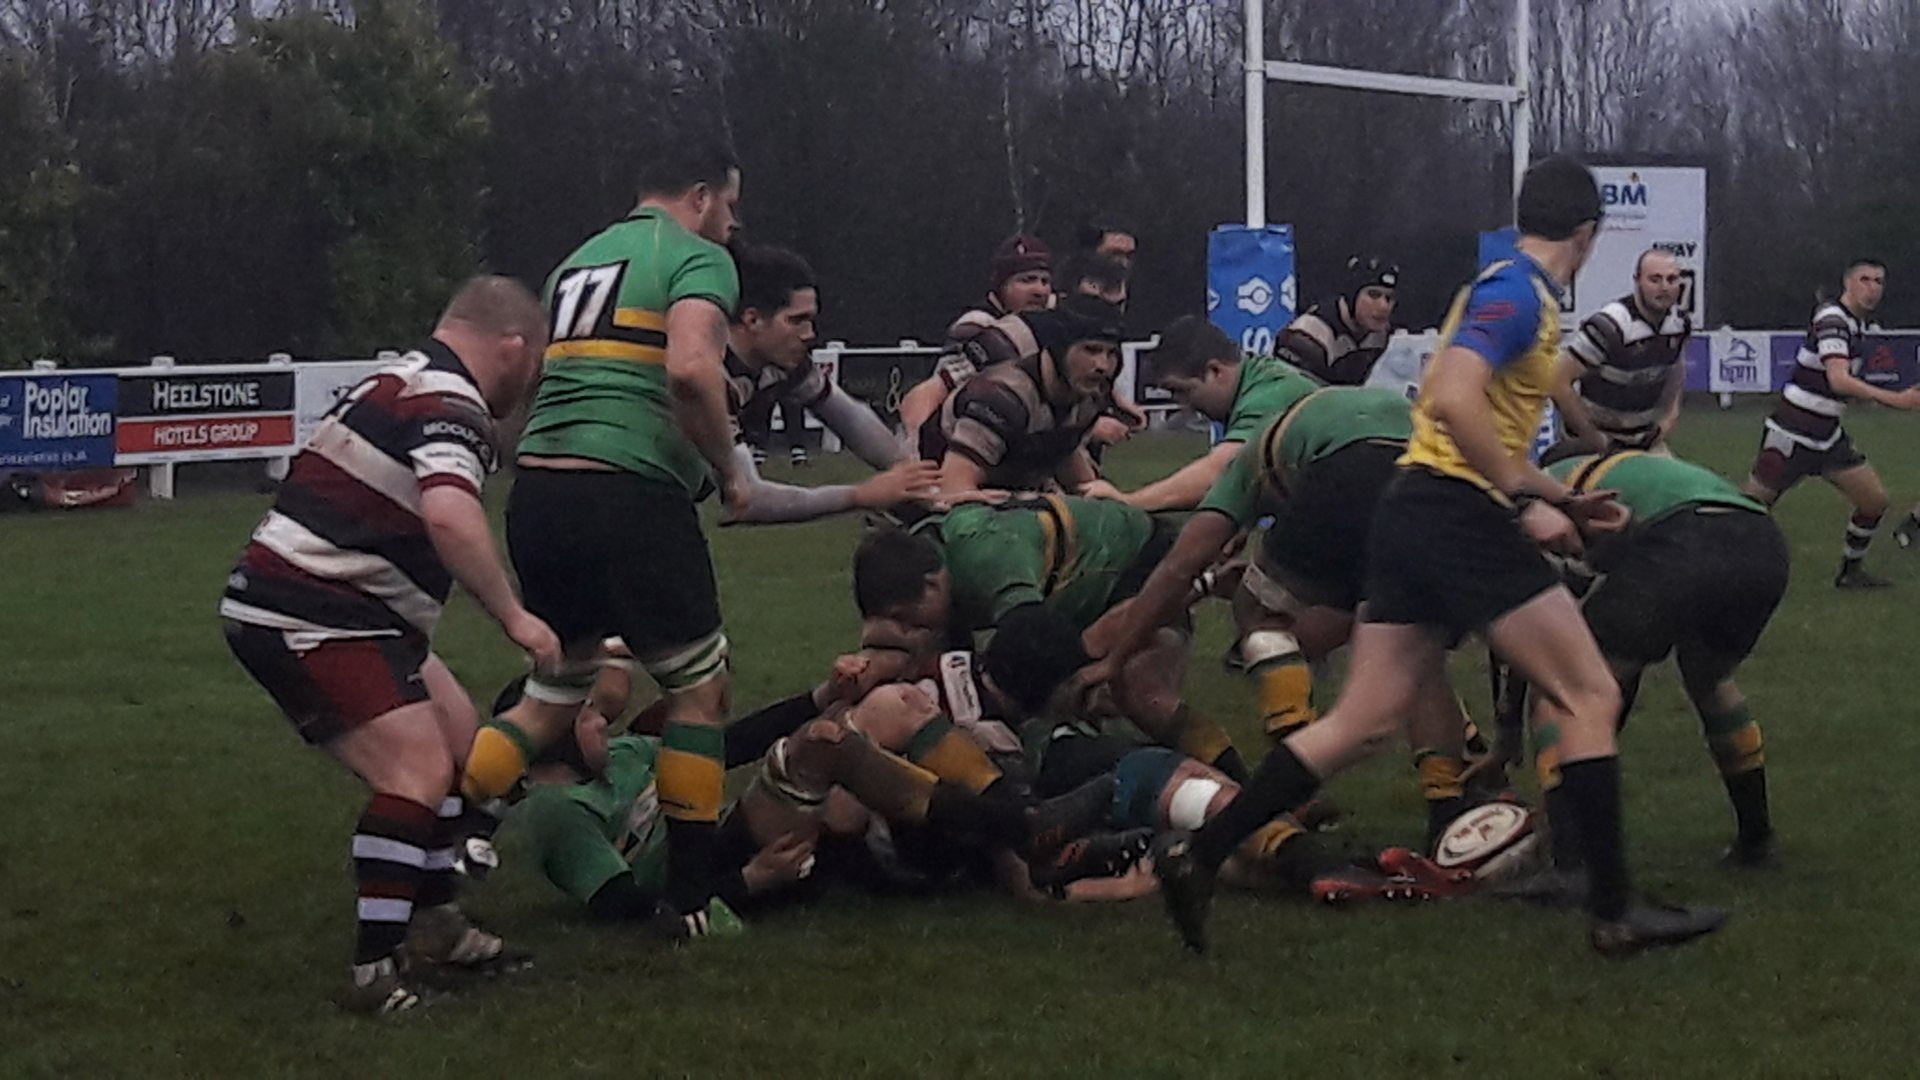 Bracknell RFC won 23-21 at Cleve in their South West Premier clash on Saturday